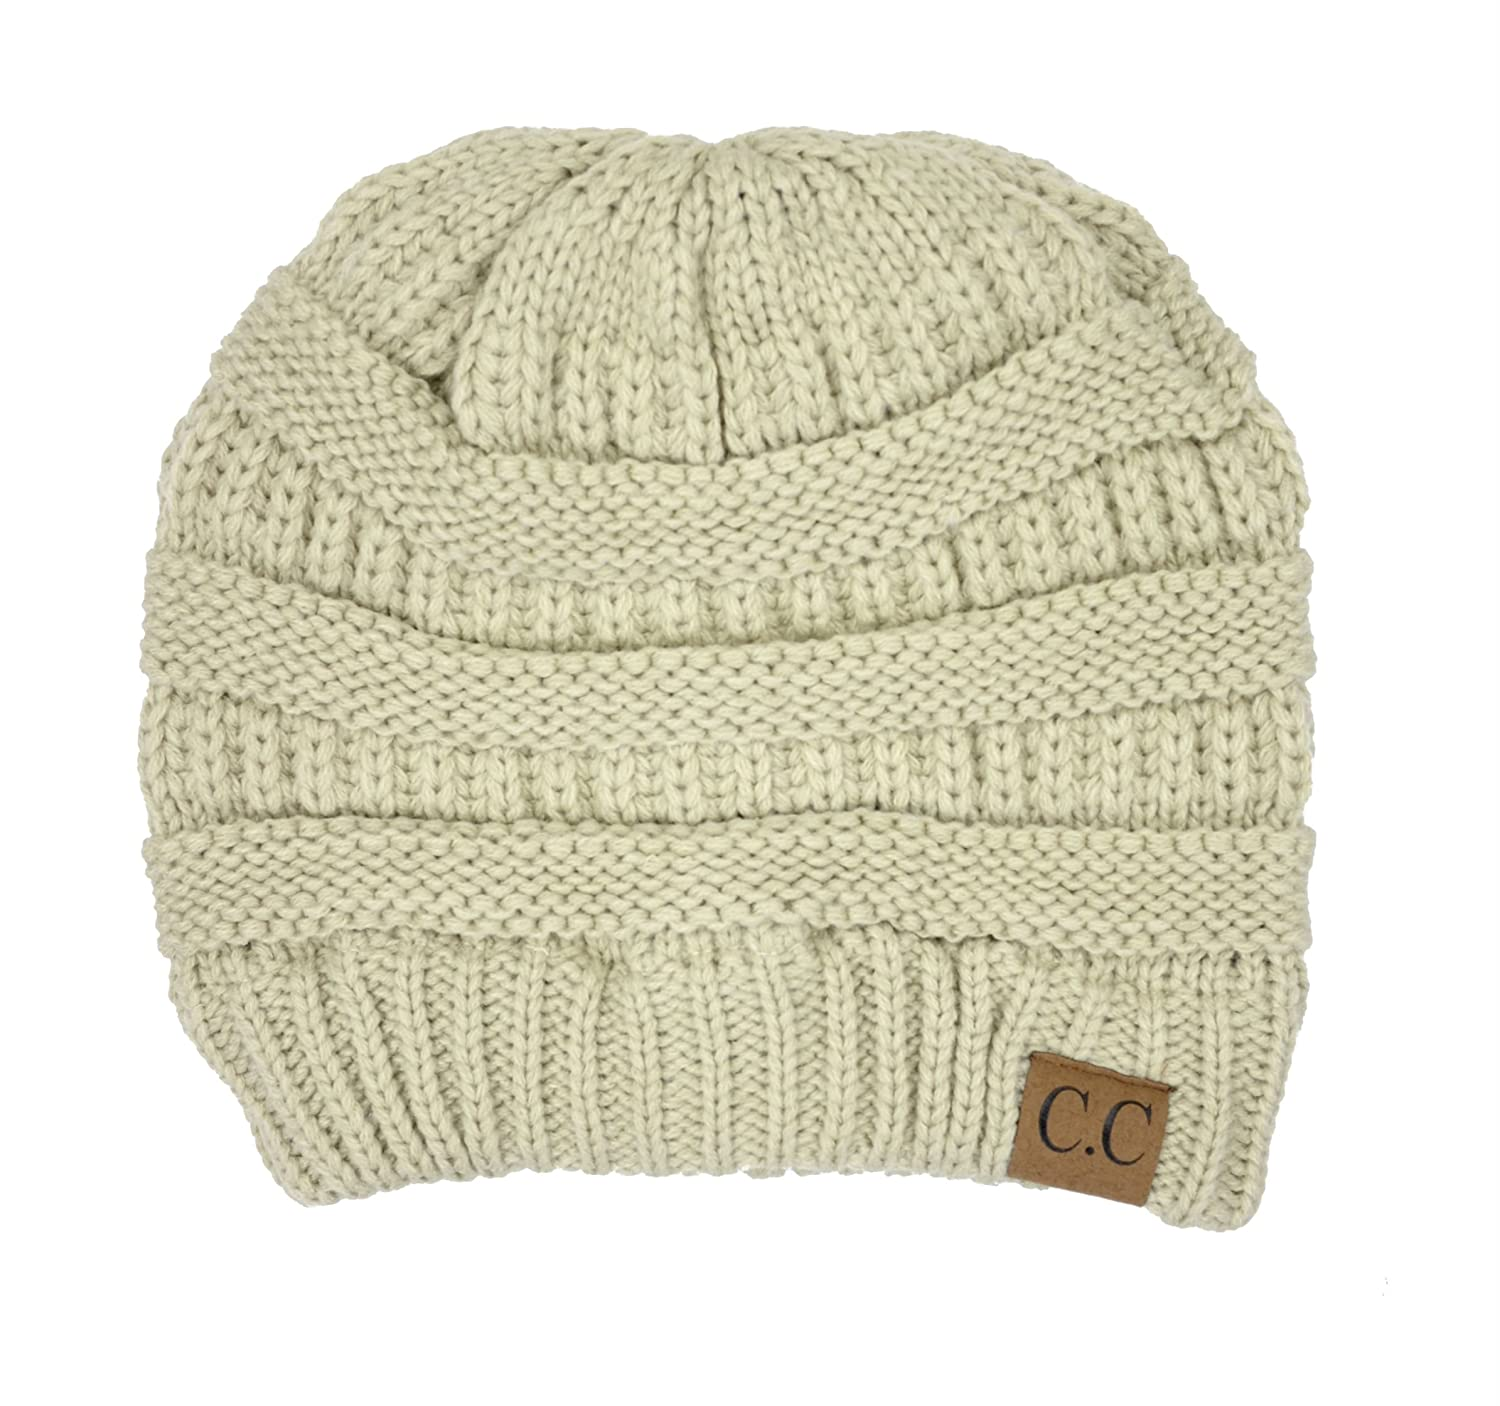 05a13fd6147 Amazon.com  Thick Slouchy Knit Oversized Beanie Cap Hat (Beige)  Clothing